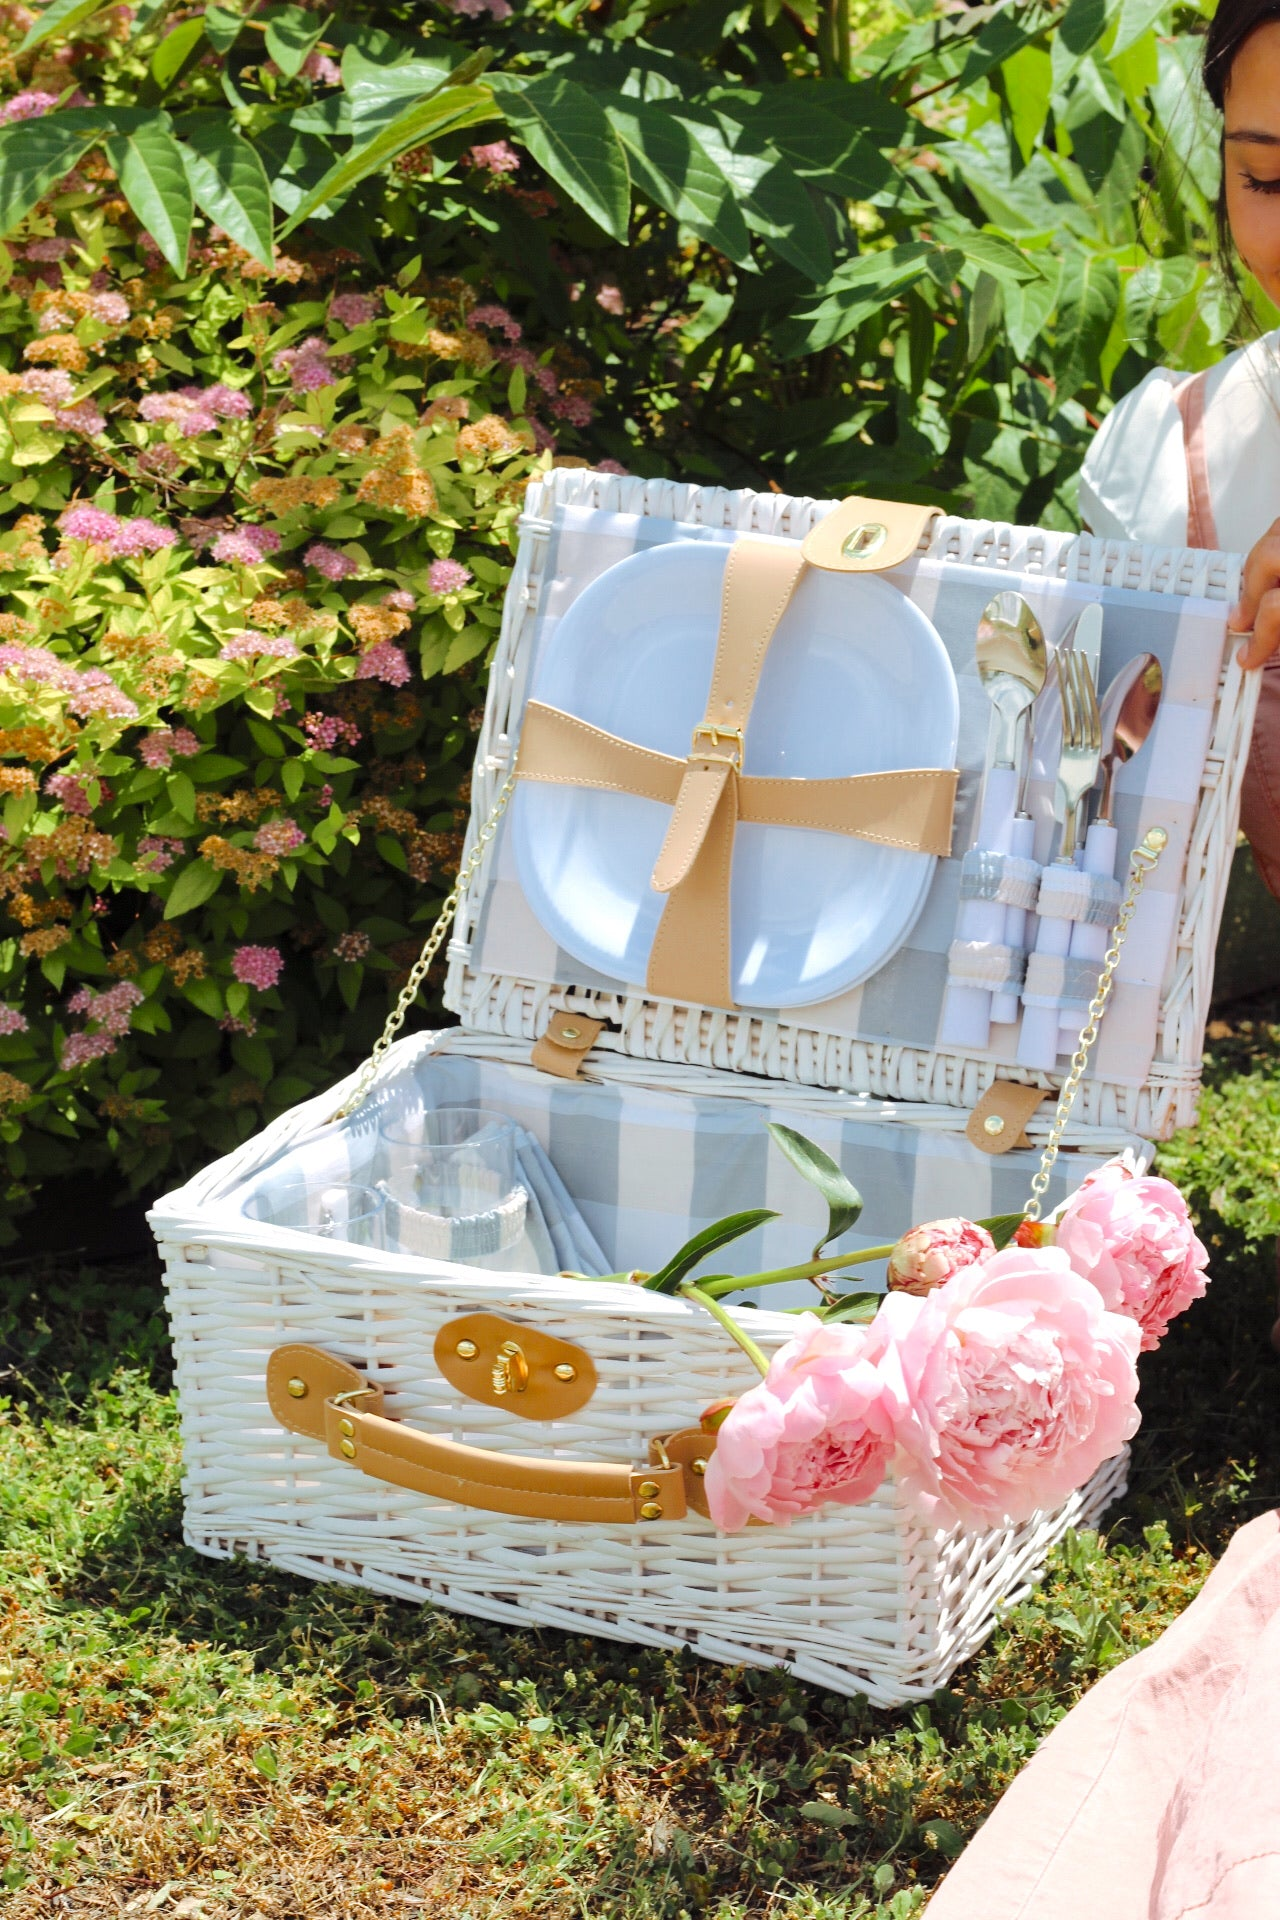 Boothbay Picnic Basket